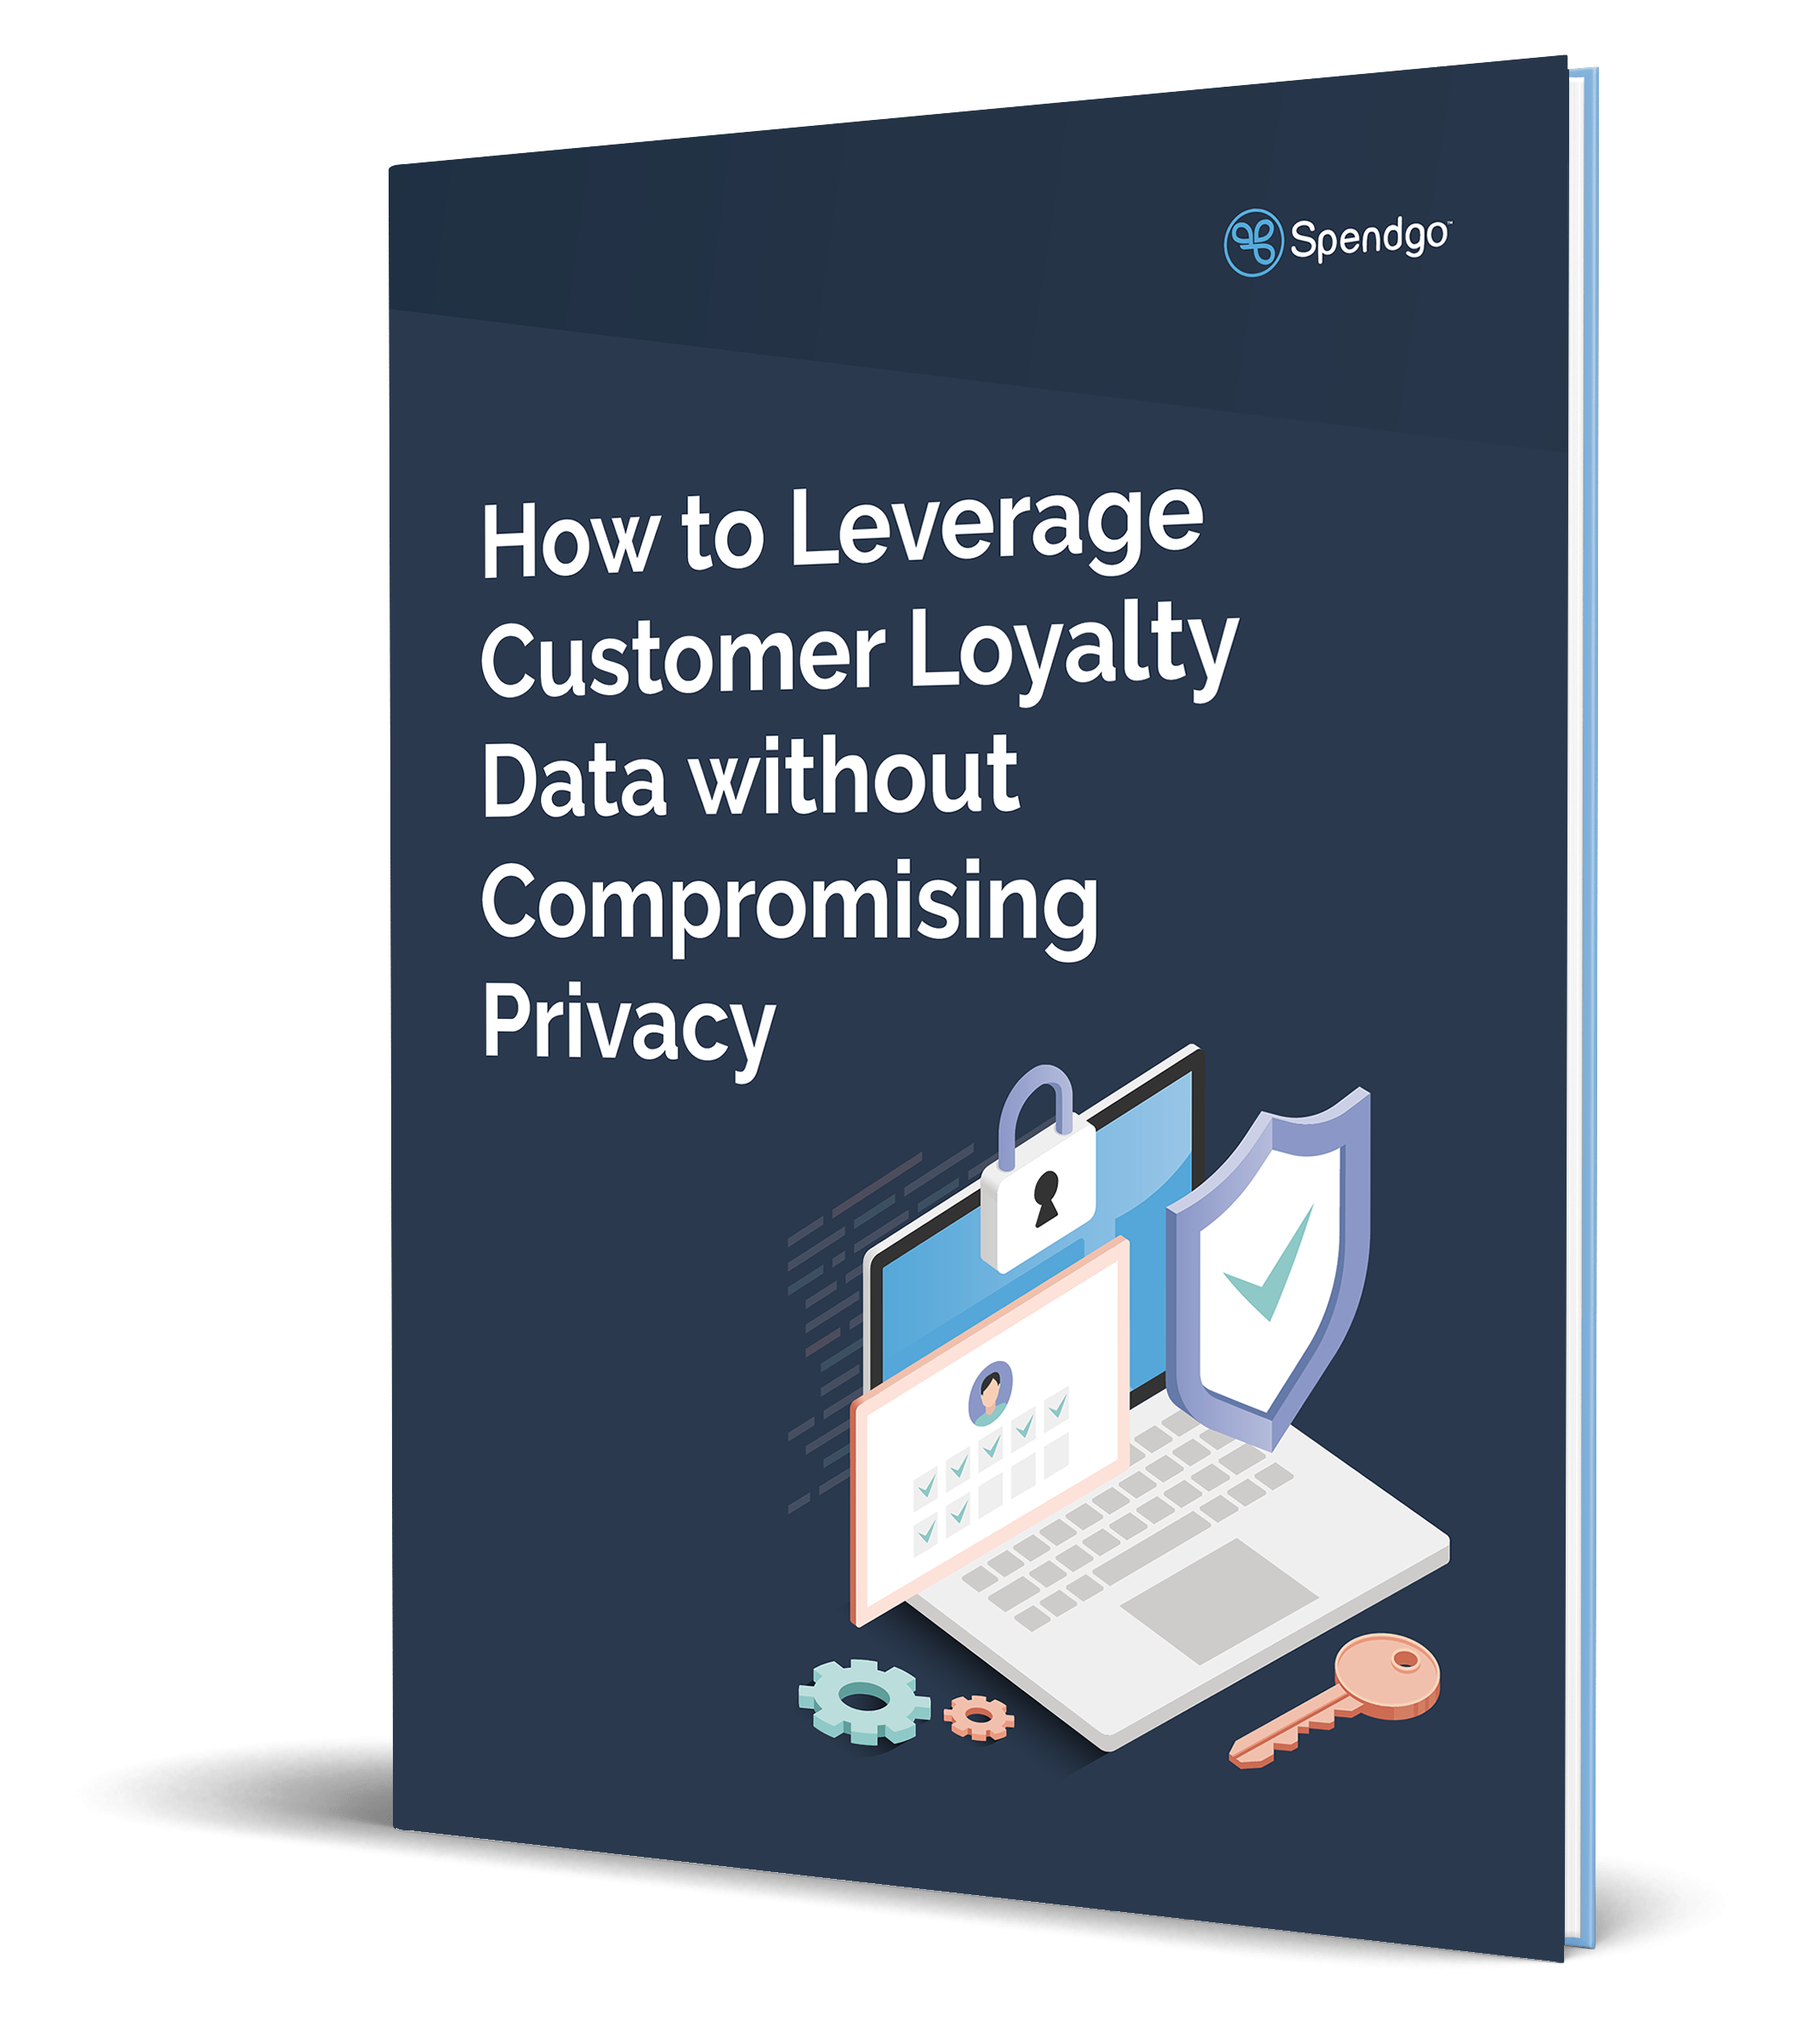 How to Leverage Customer Loyalty Data without Compromising Privacy